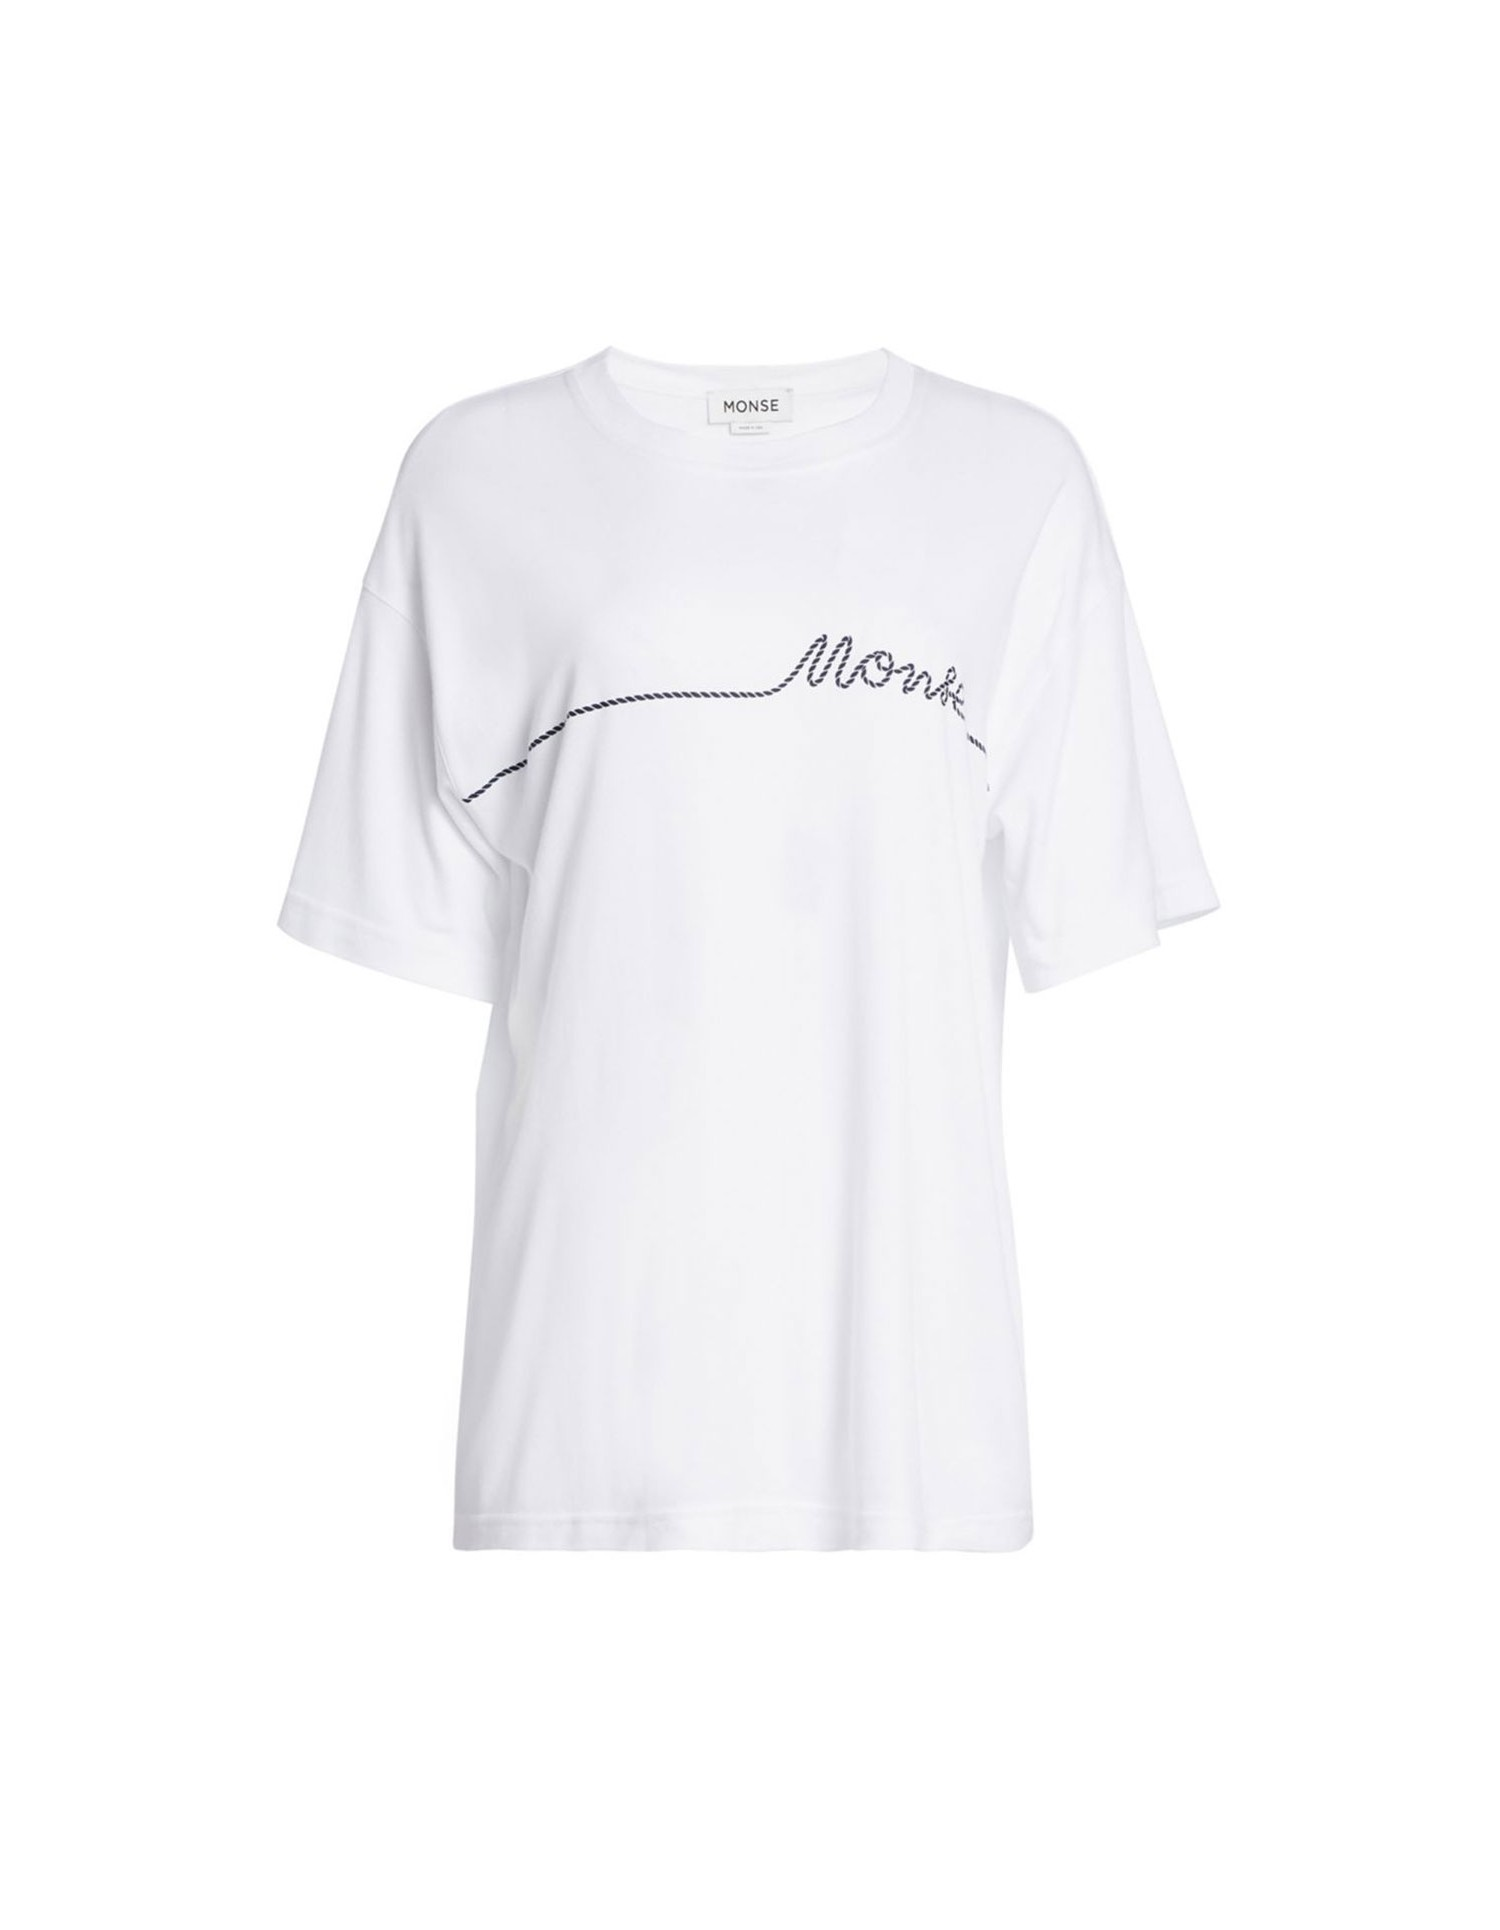 Monse Unisex Small Rope Print Tee in White Front